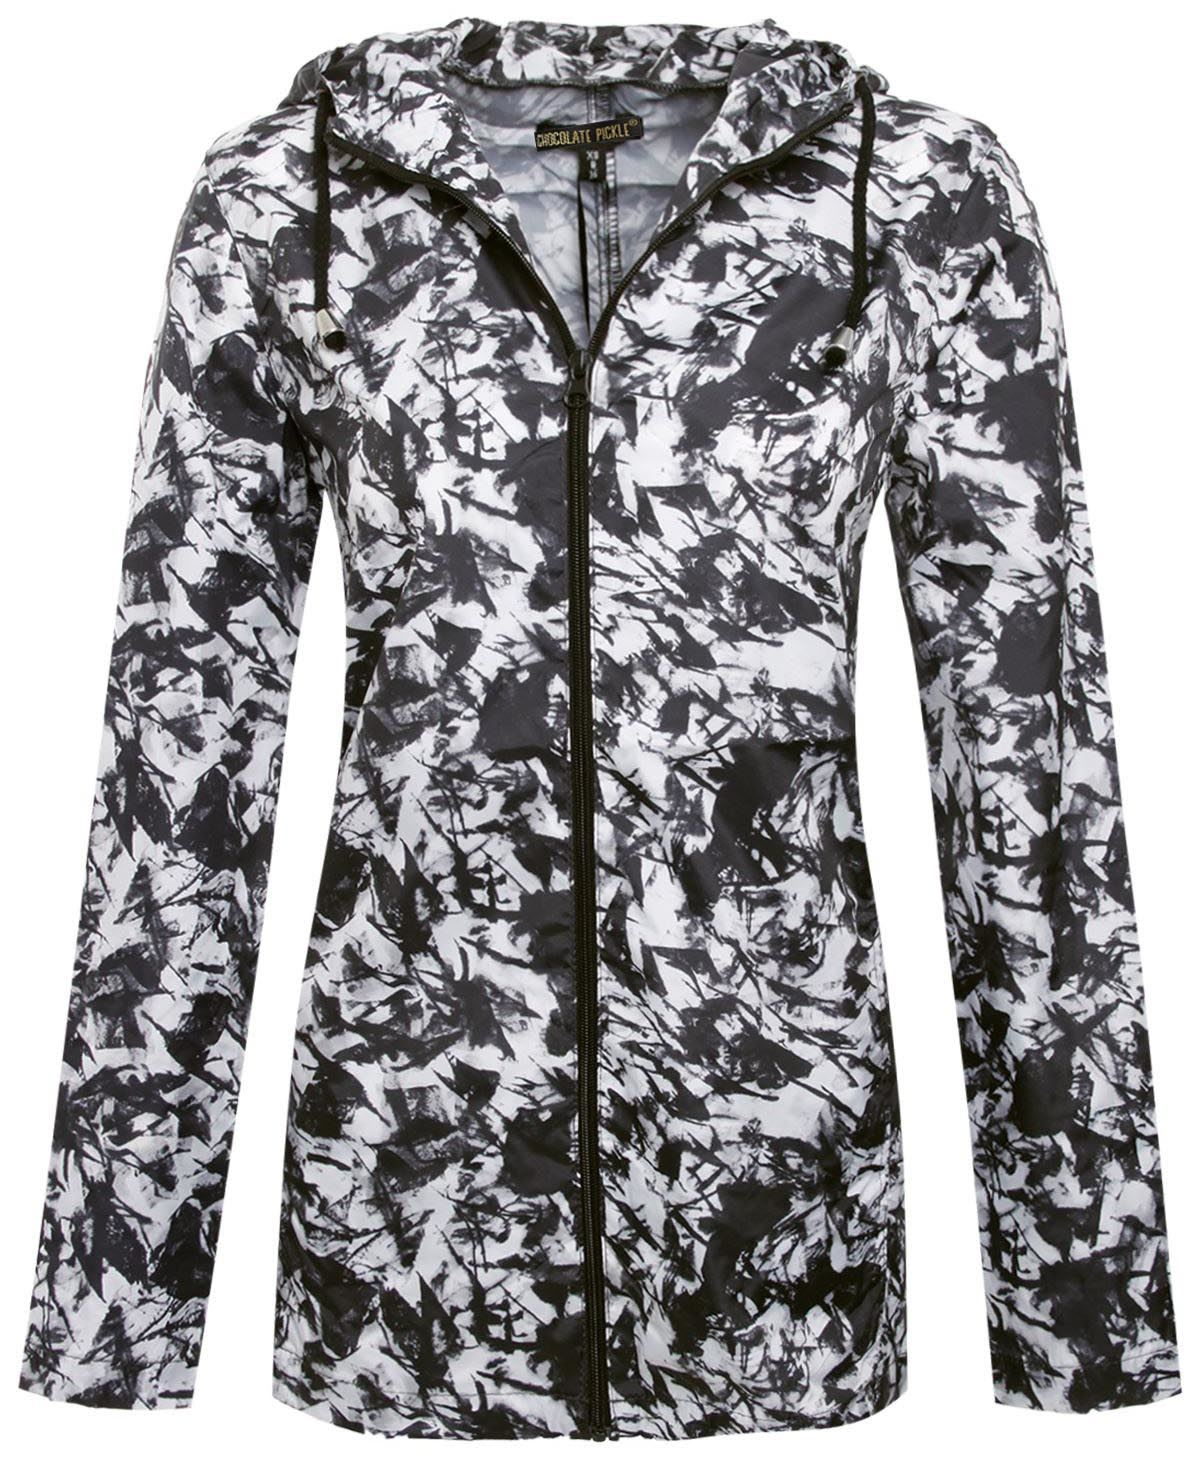 New Womens Tie Dye Splash Zip Mac Raincoat Polyester Parka Hooded Jacket 14-20 | eBay